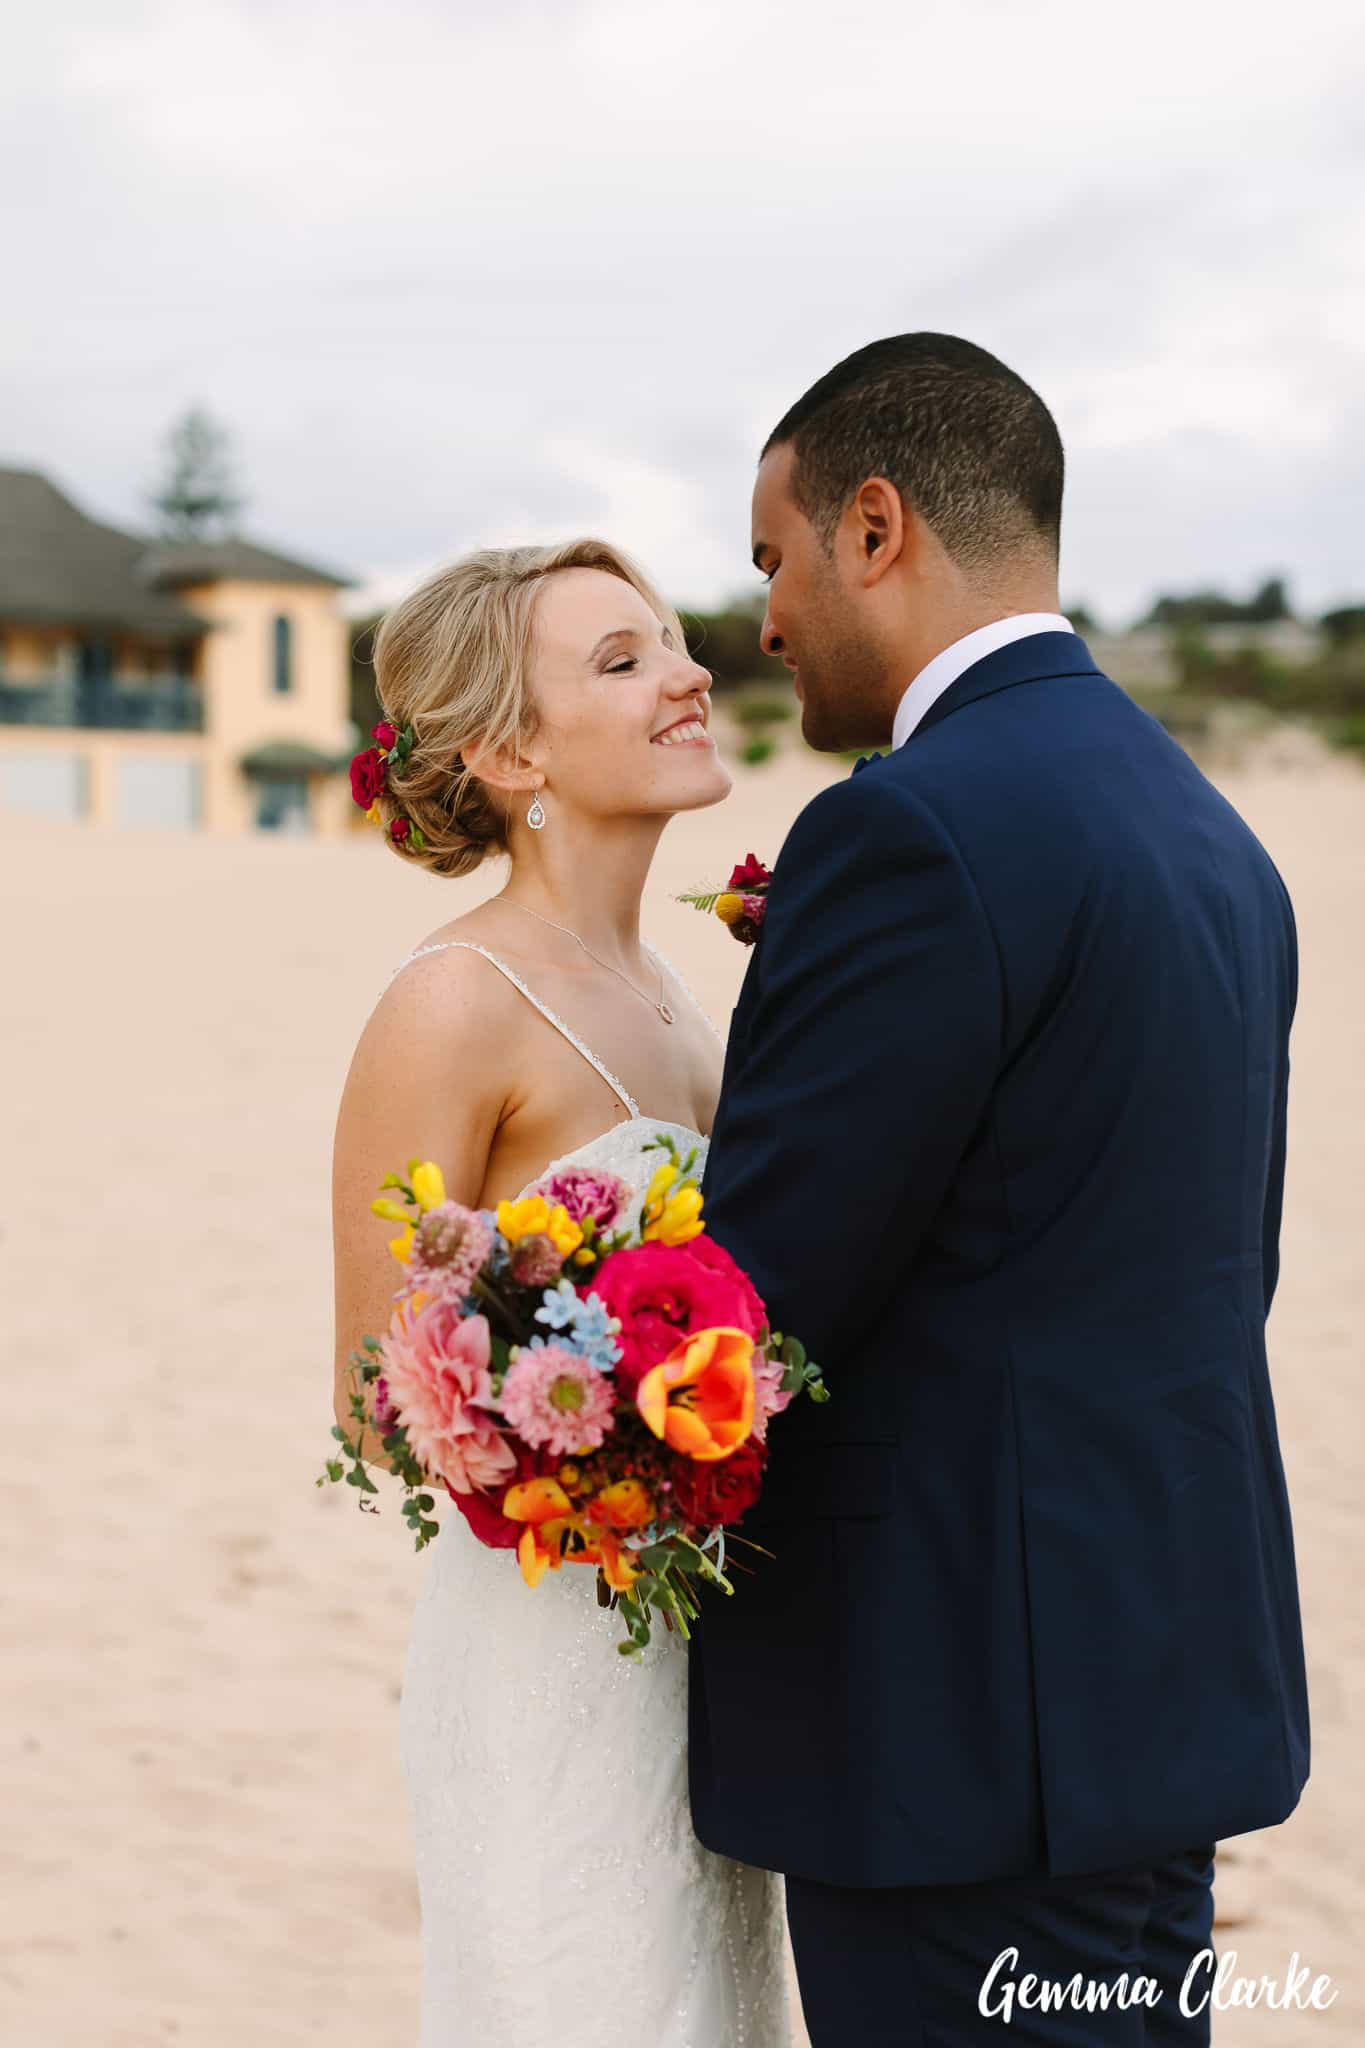 Sydney-wedding-reception-fresh-water-surf-lifesaving-club-slsc-florist-stylist-hire-10